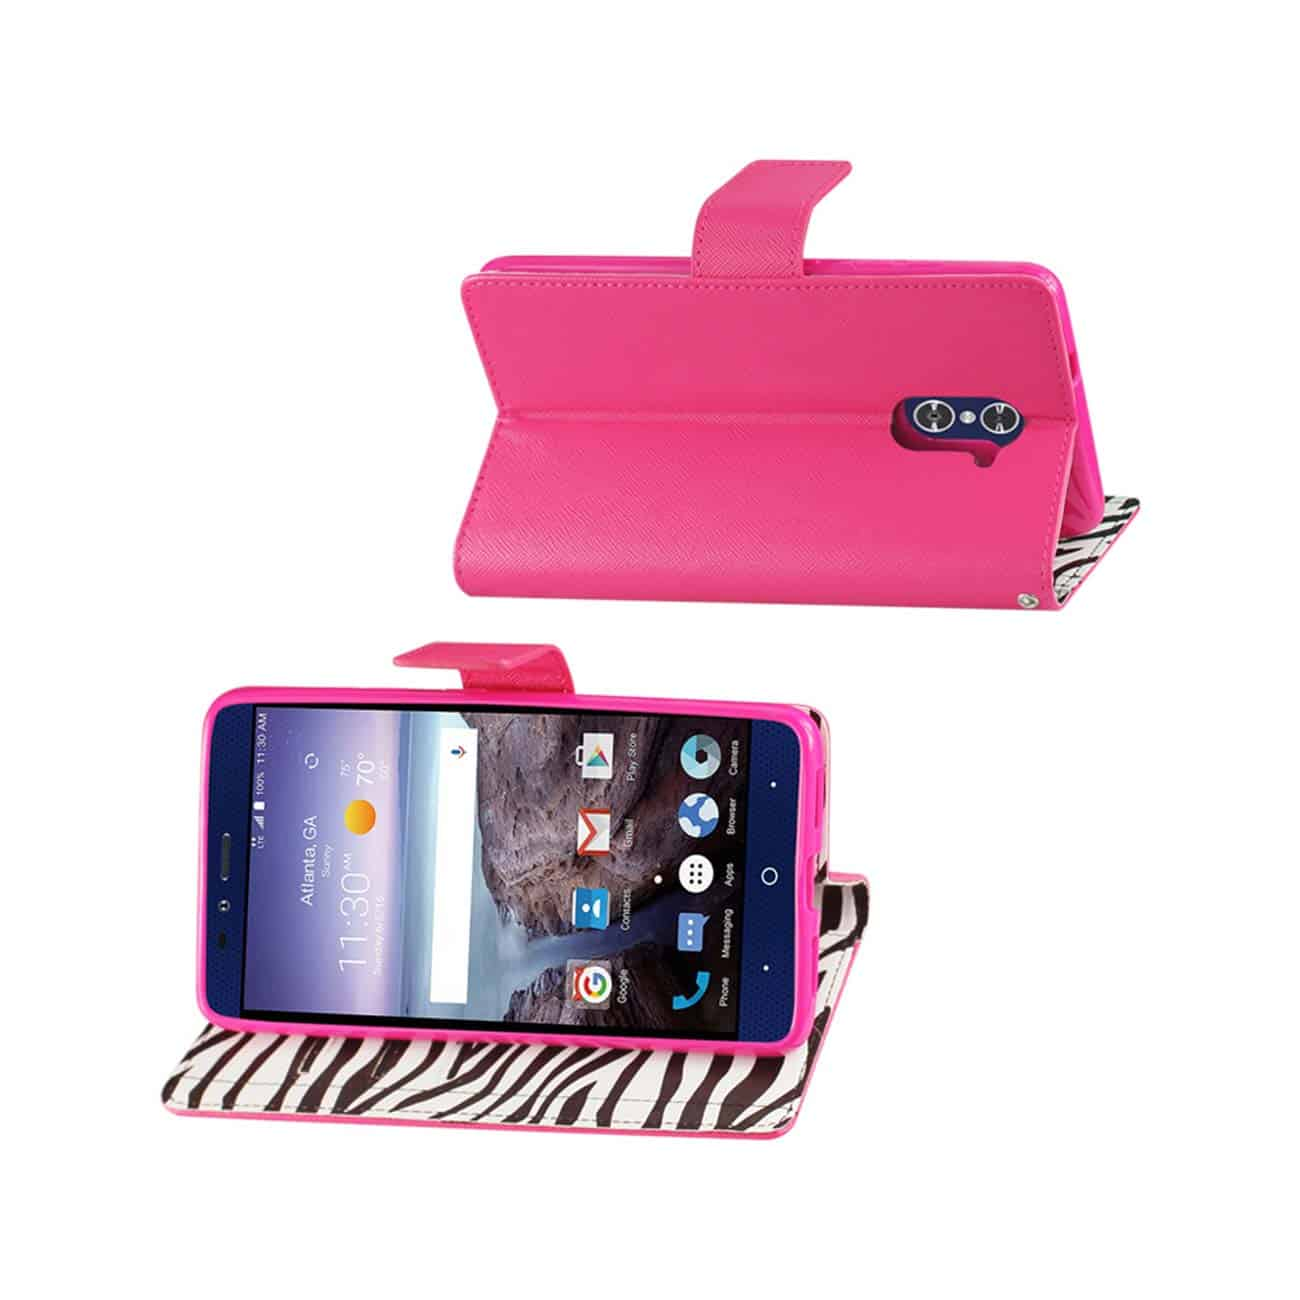 ZTE GRAND X MAX 2 WALLET CASE WITH INNER ZEBRA PRINT IN HOT PINK